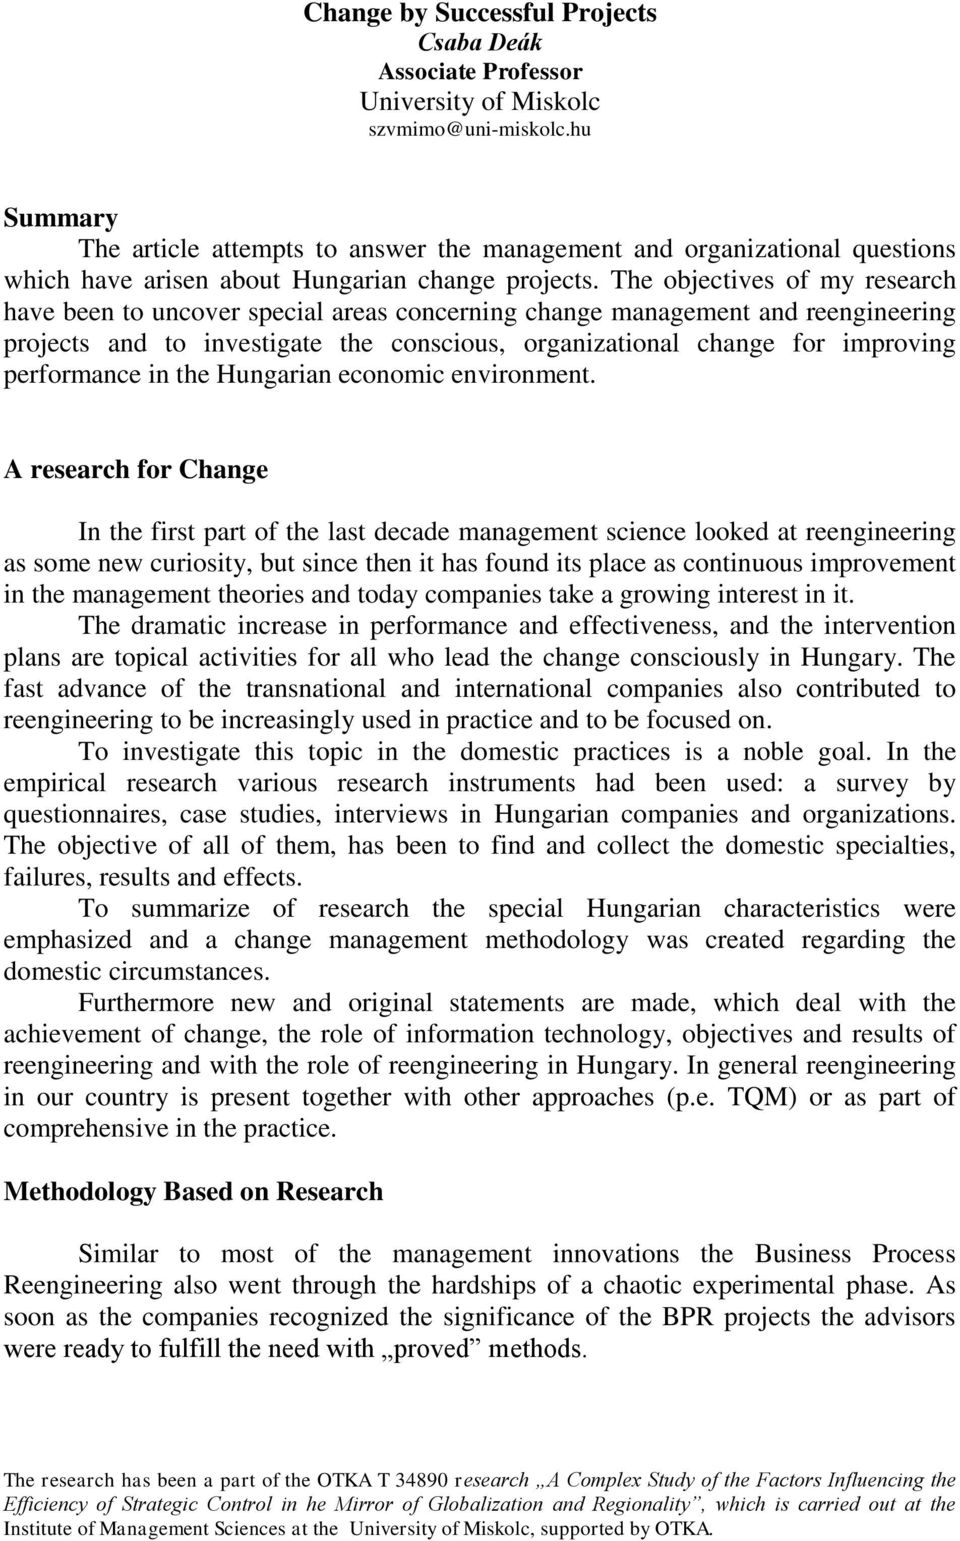 The objectives of my research have been to uncover special areas concerning change management and reengineering projects and to investigate the conscious, organizational change for improving